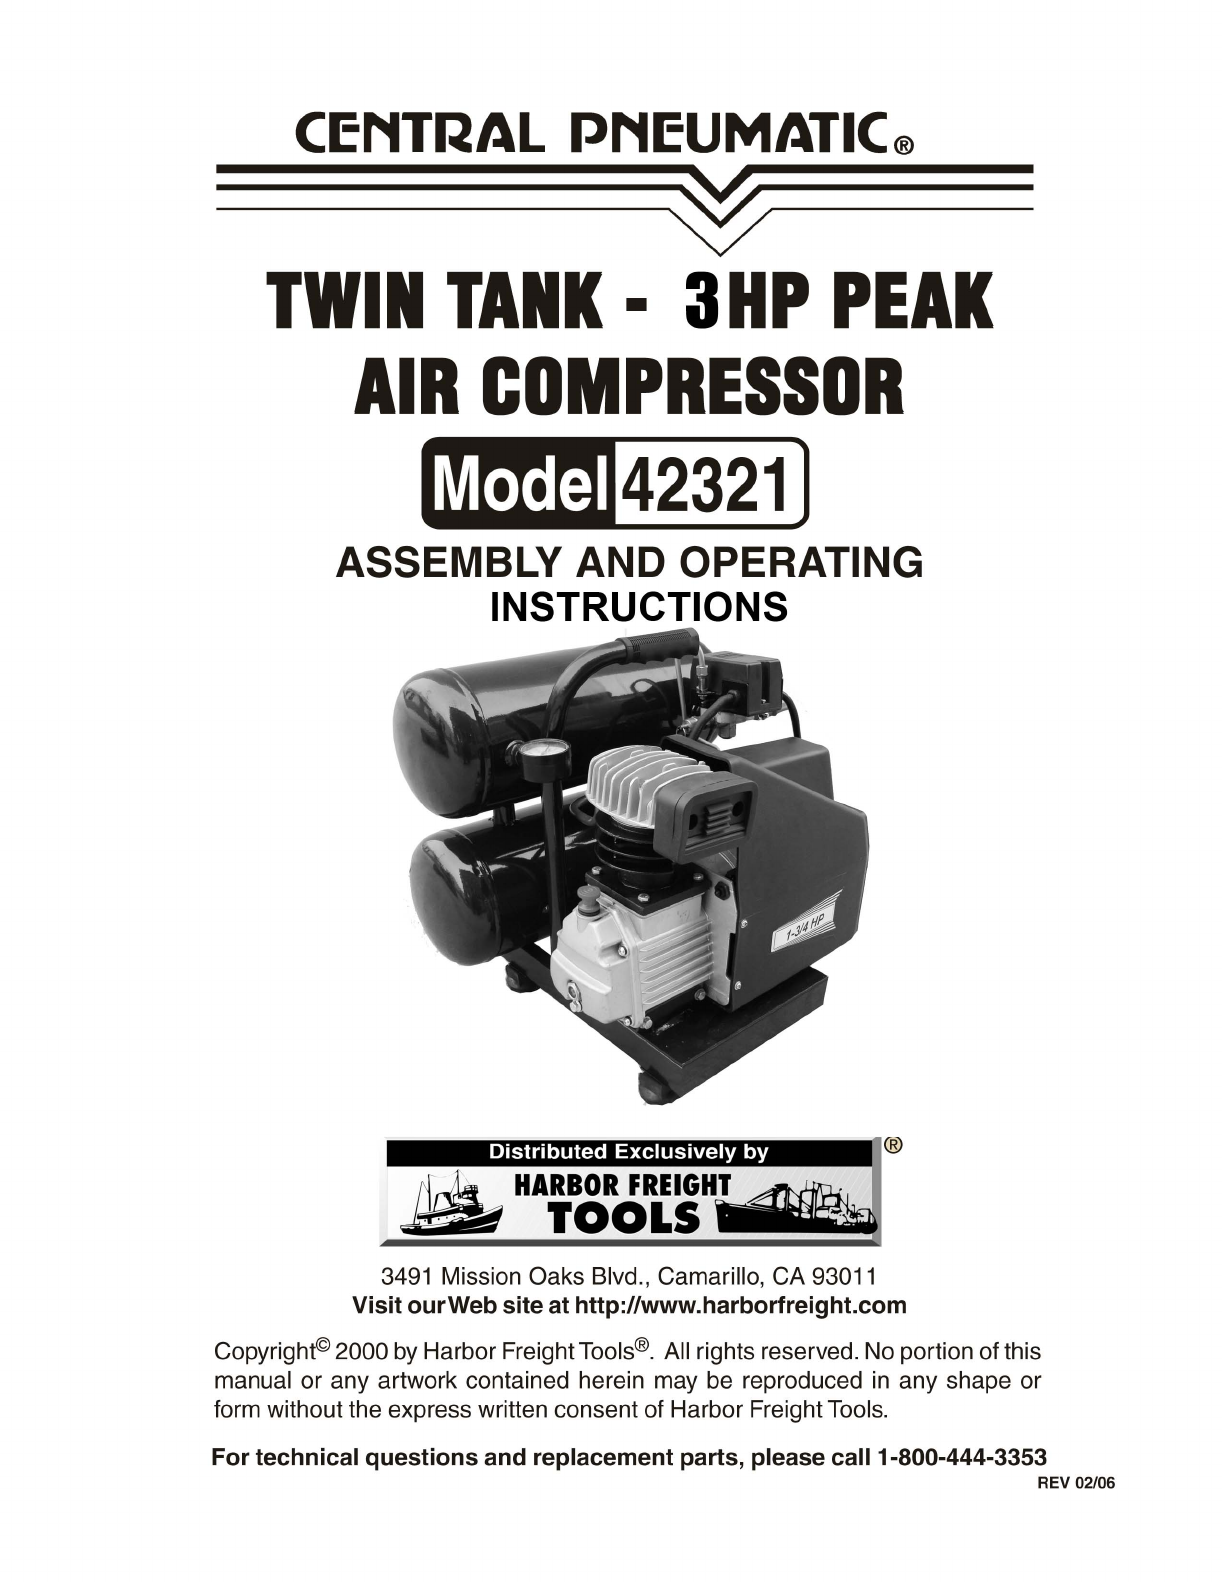 harbor freight tools air compressor 42321 user guide